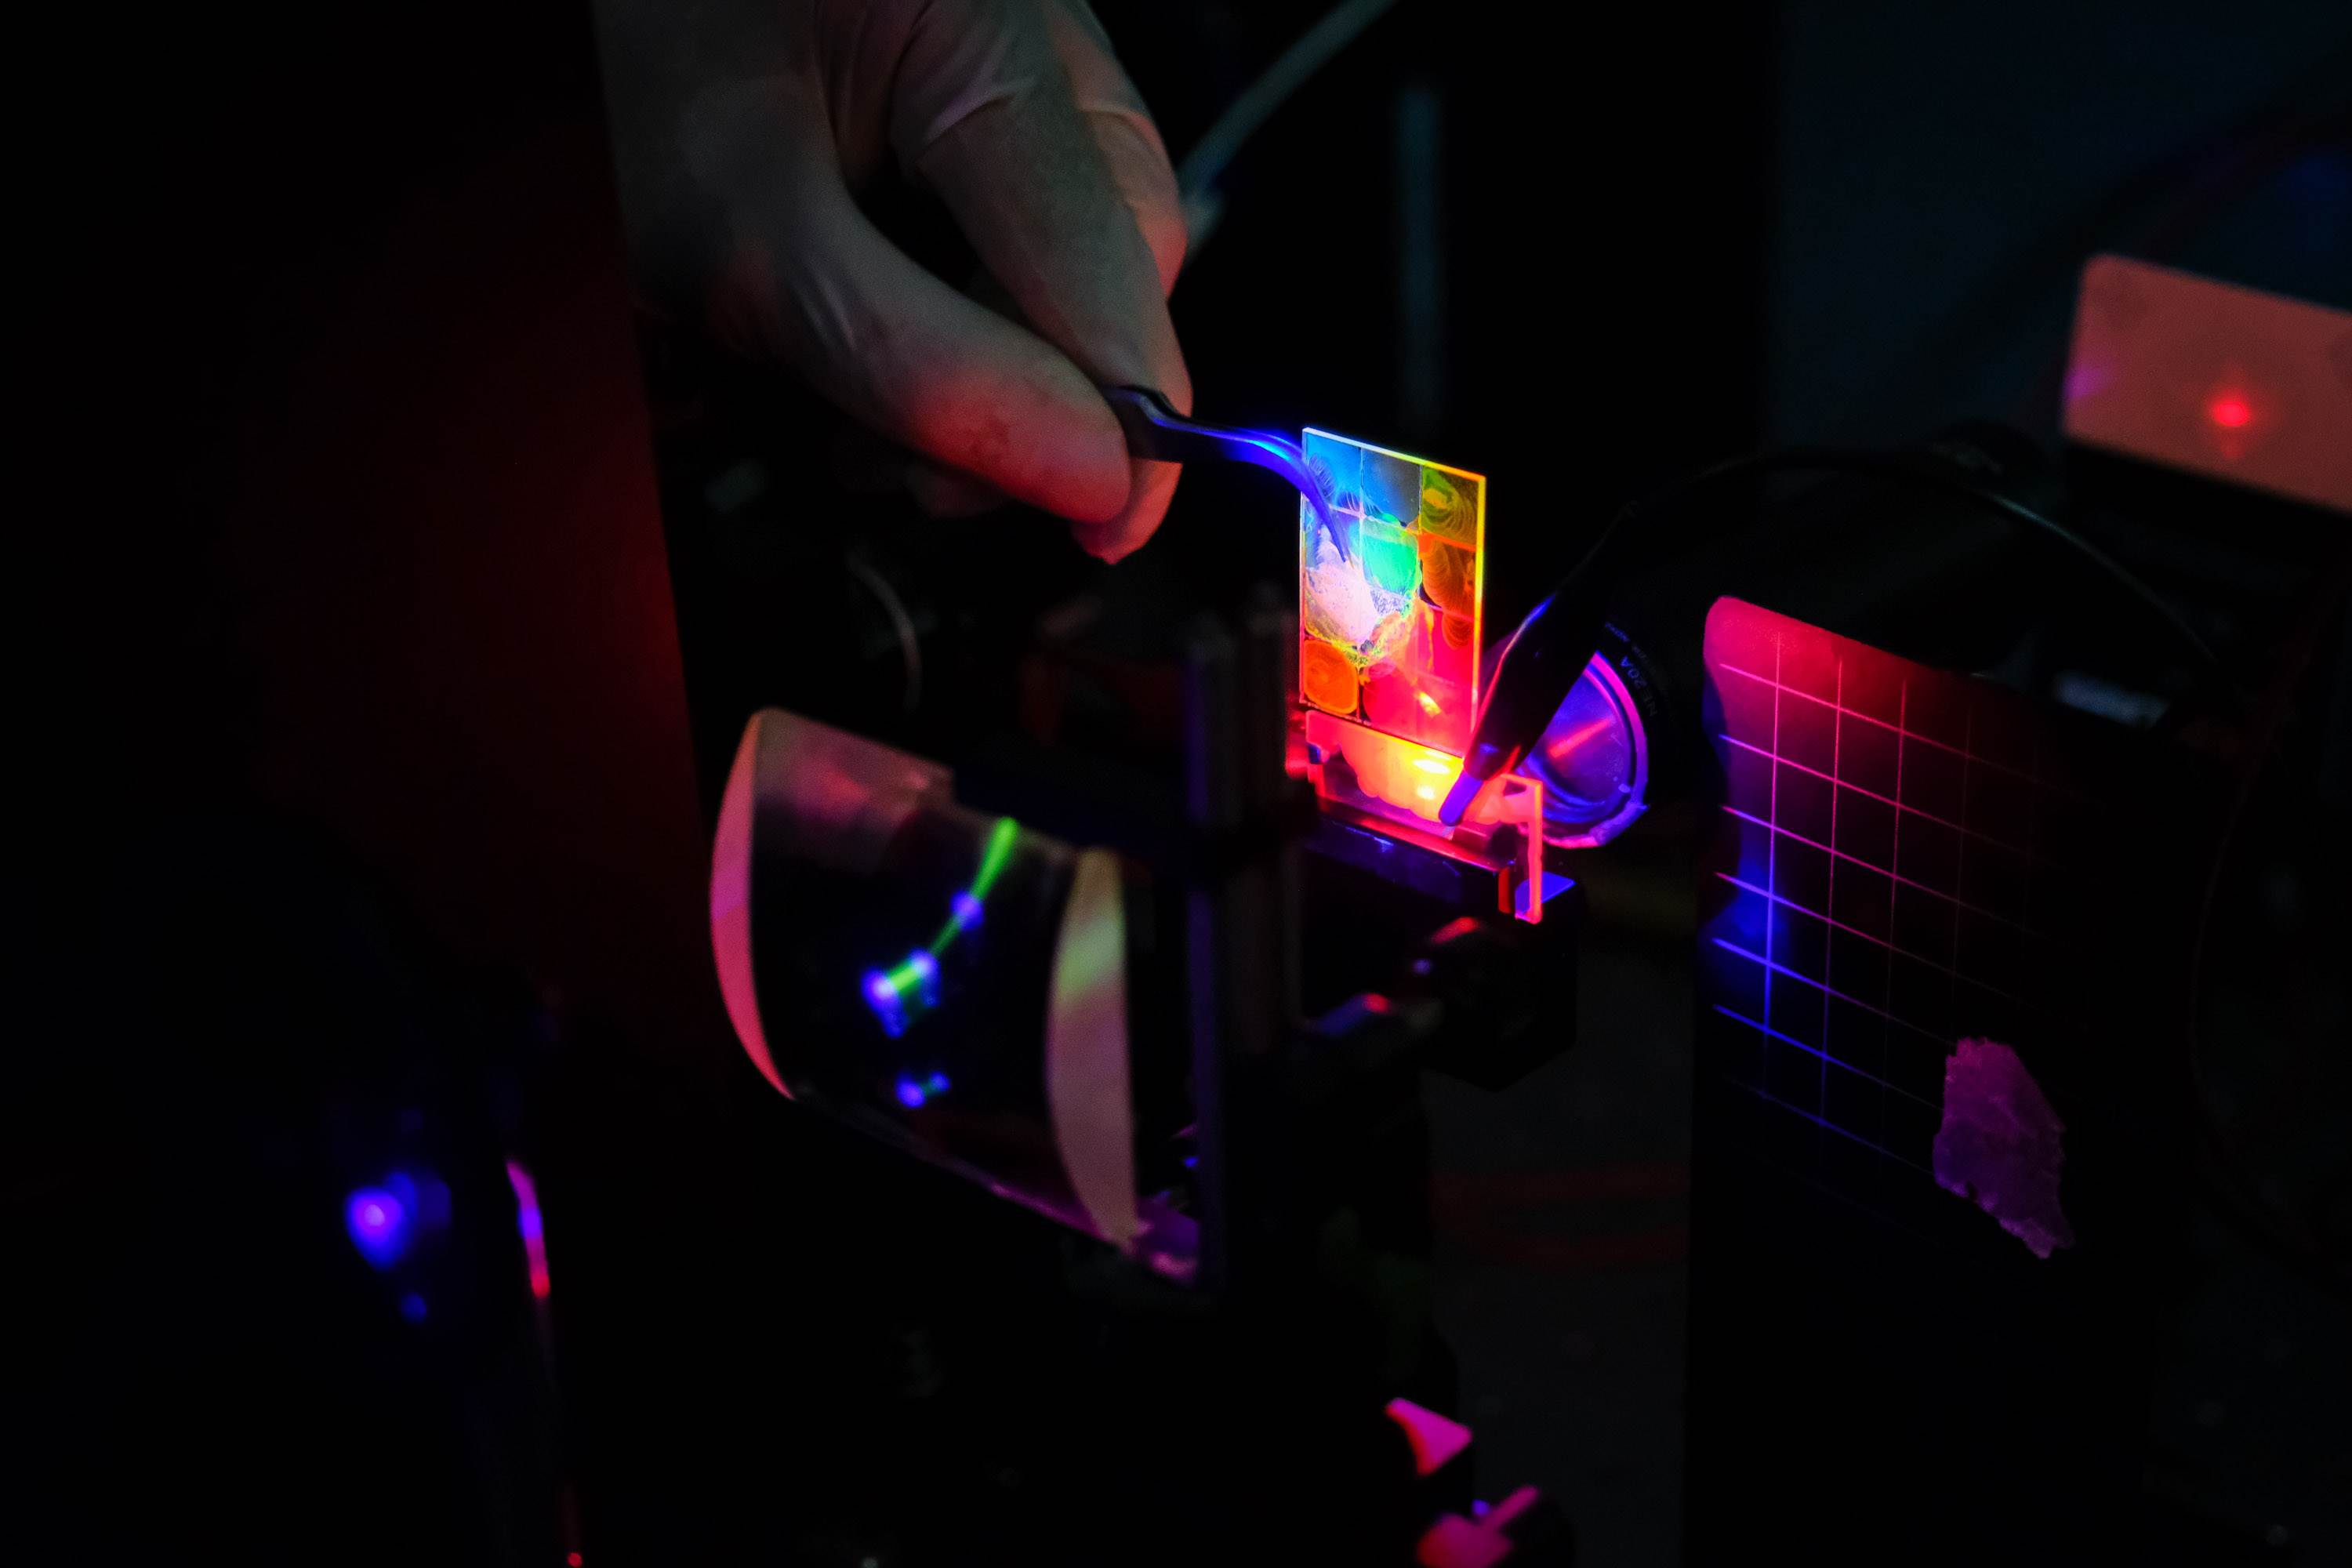 Glass plates with applied colloidal quantum dots which can emit different spectrums light when electrically and optically pumped, which makes it suitable as a laser material.